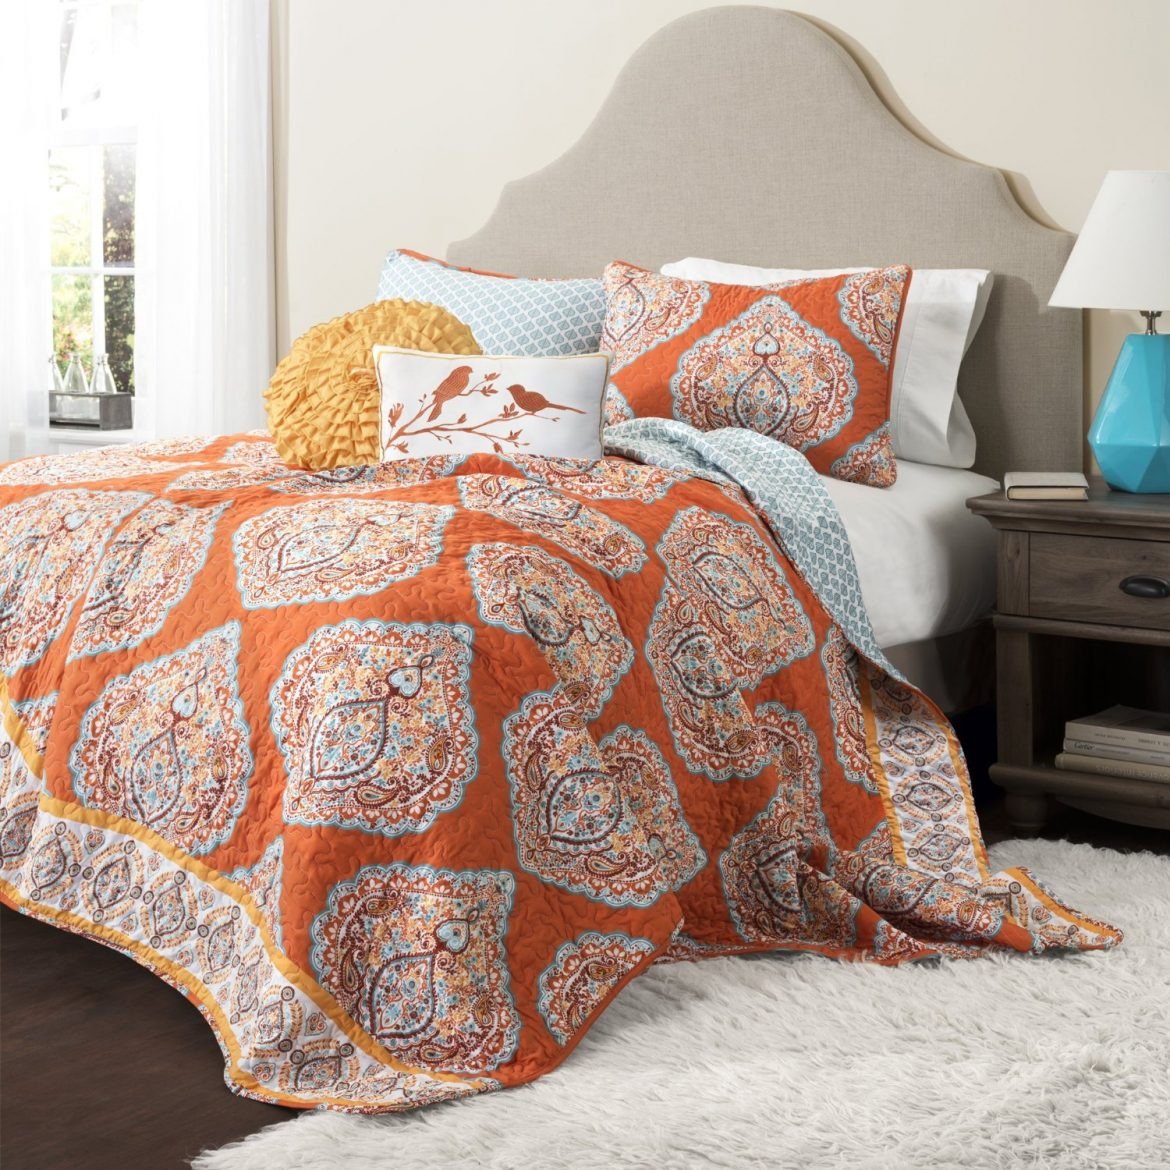 More Than Bedding, Quilts Are Art - Domestications Bedding : bedding quilts - Adamdwight.com